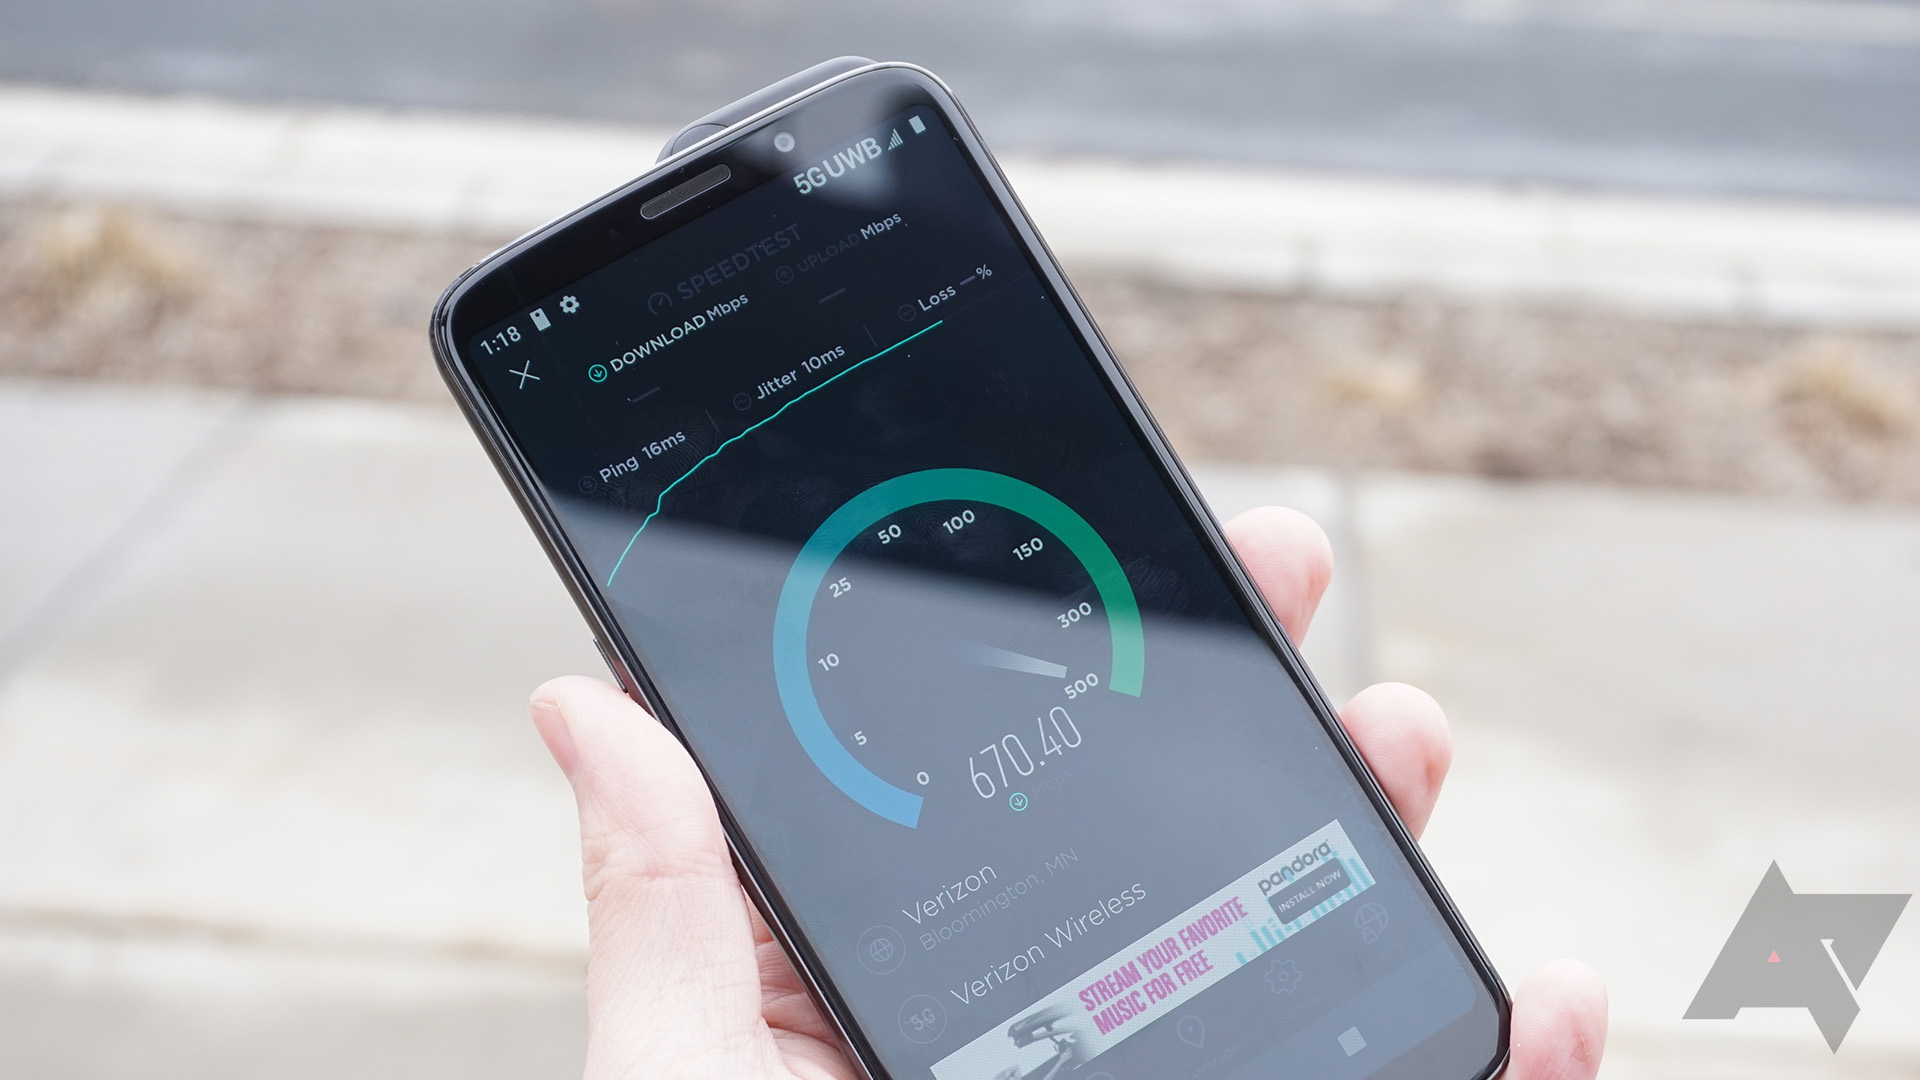 Ookla Speedtest adds 1GB benchmark for accurately measuring 5G connections